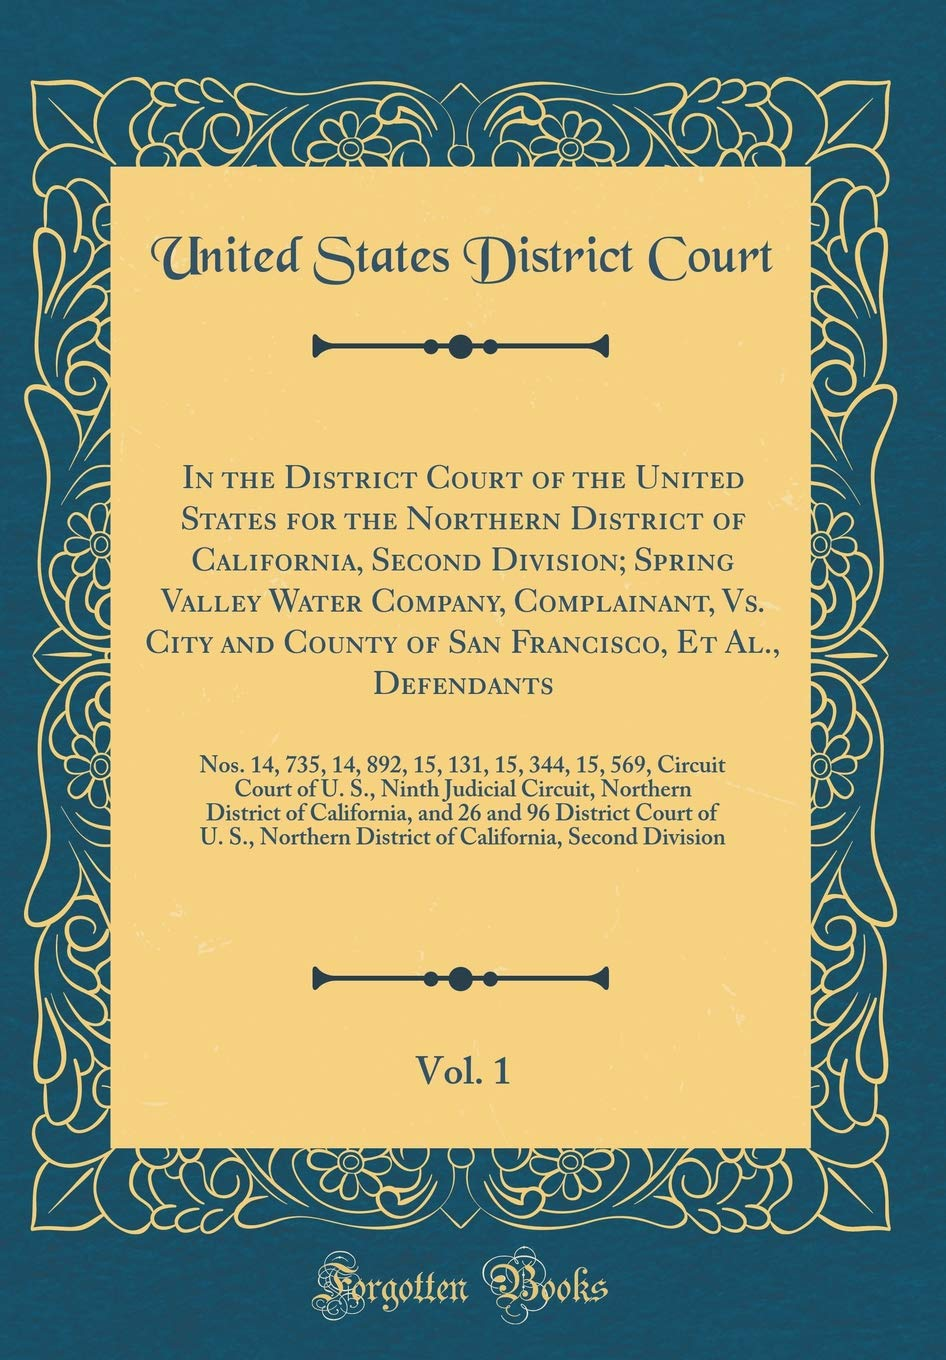 Download In the District Court of the United States for the Northern District of California, Second Division; Spring Valley Water Company, Complainant, Vs. ... 14, 735, 14, 892, 15, 131, 15, 344, 15, 5 ebook